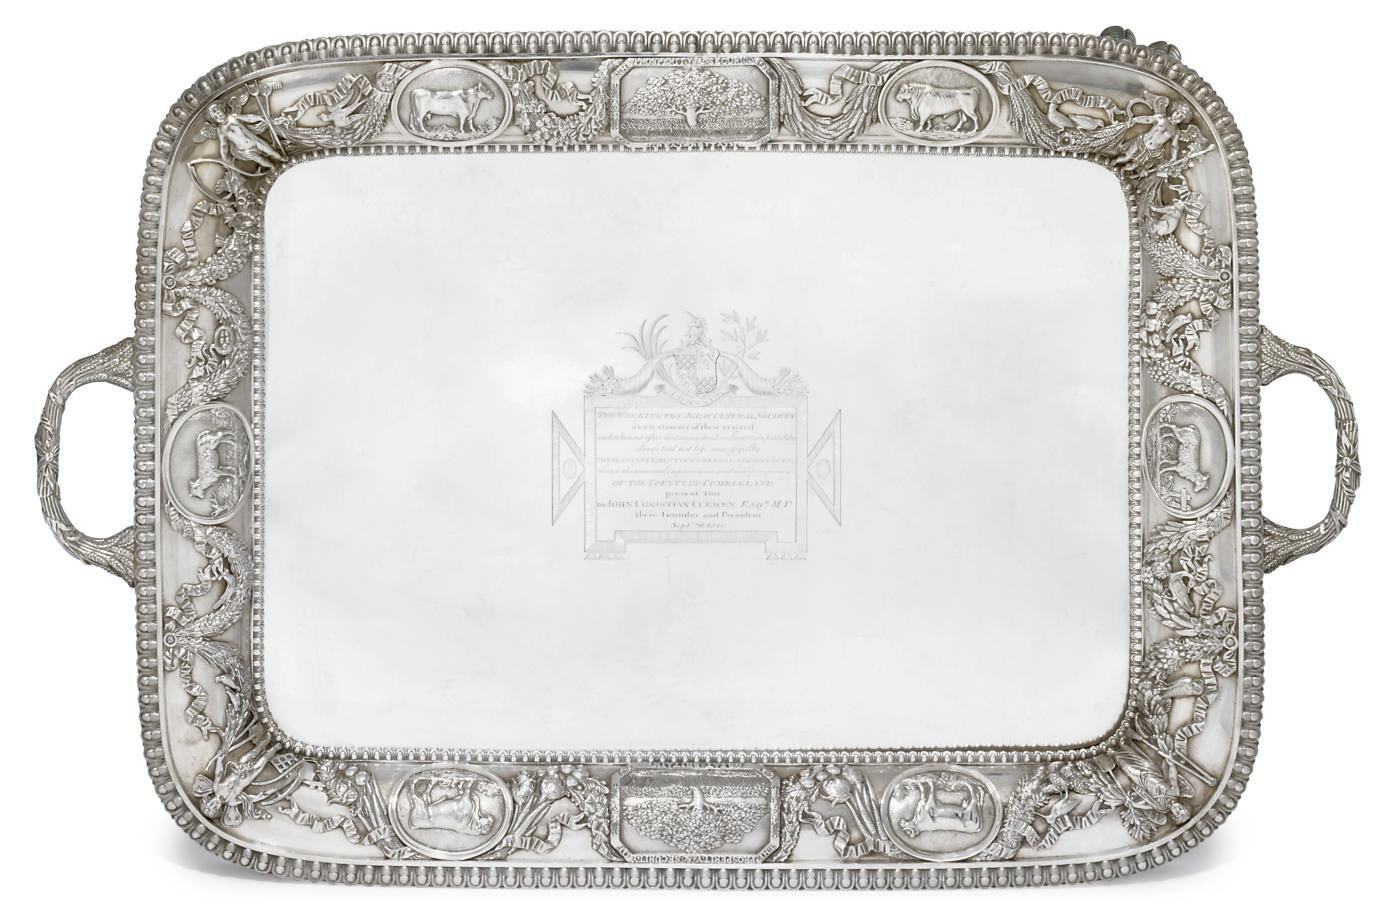 AN IMPOSING GEORGE III SILVER AGRICULTURAL PRIZE TWO-HANDLED TRAY